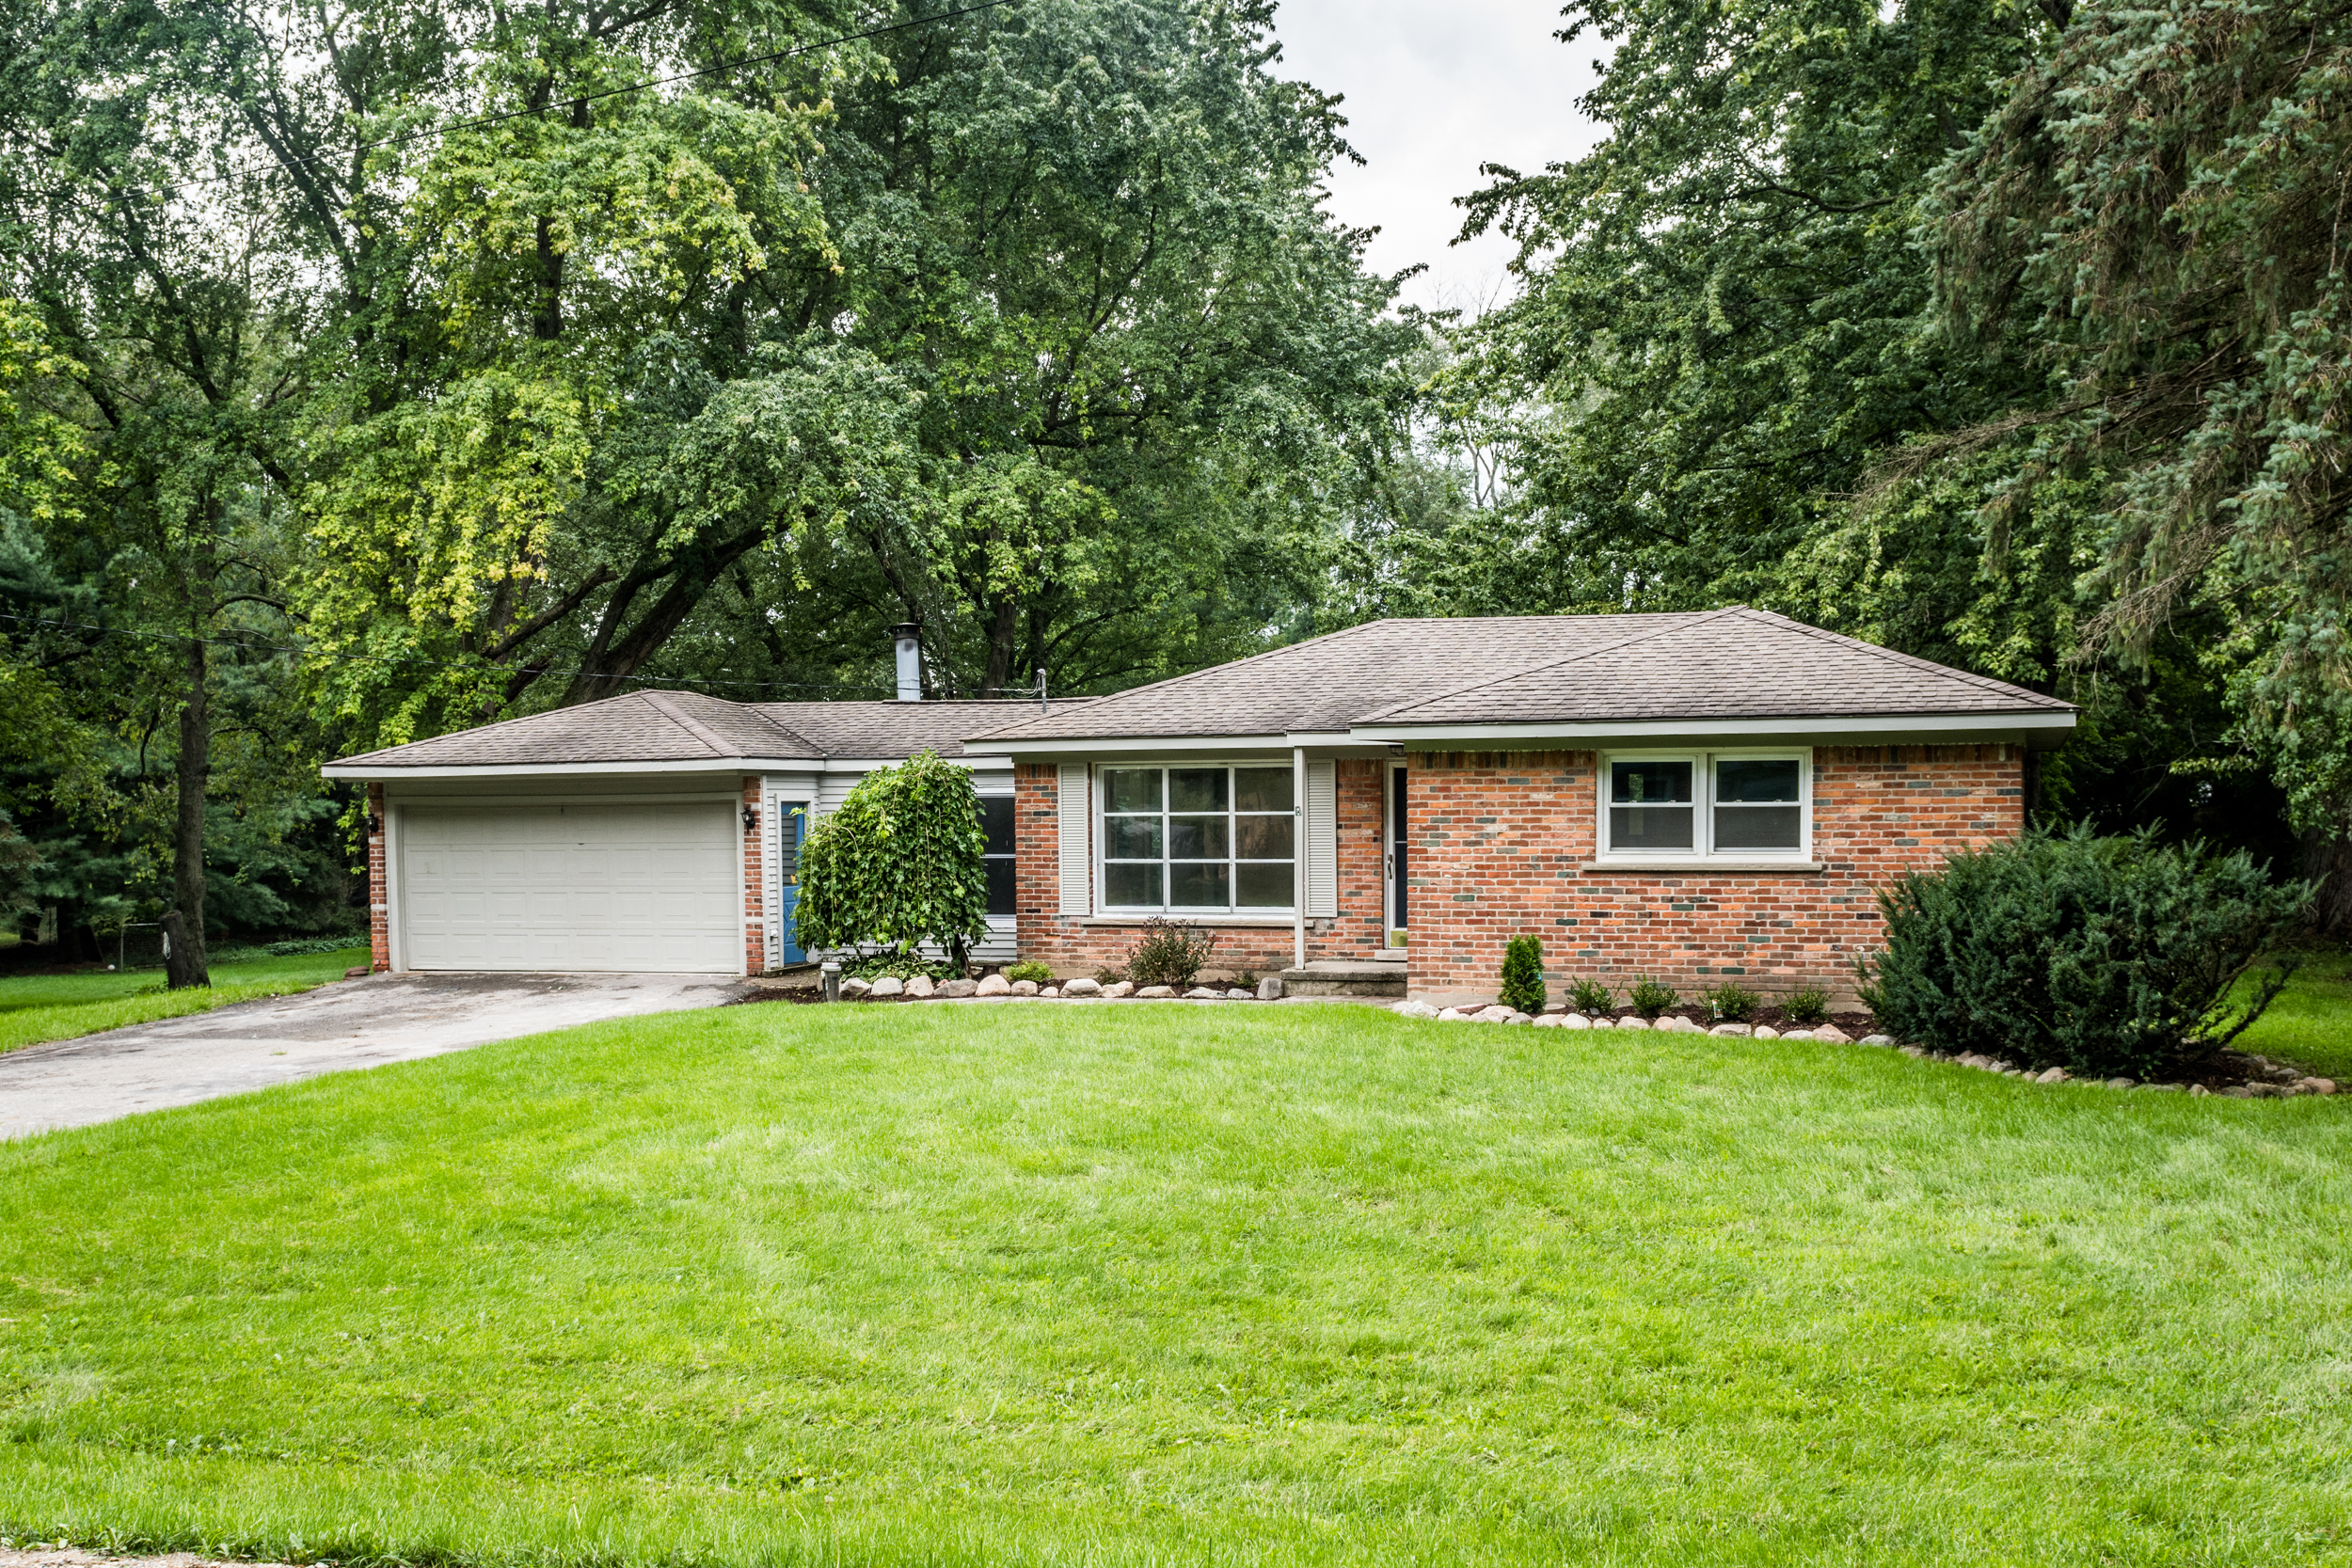 Post Lane- South Lyon - $181,000   DOM 17 / Sold for 97% of asking price / 35 Showings